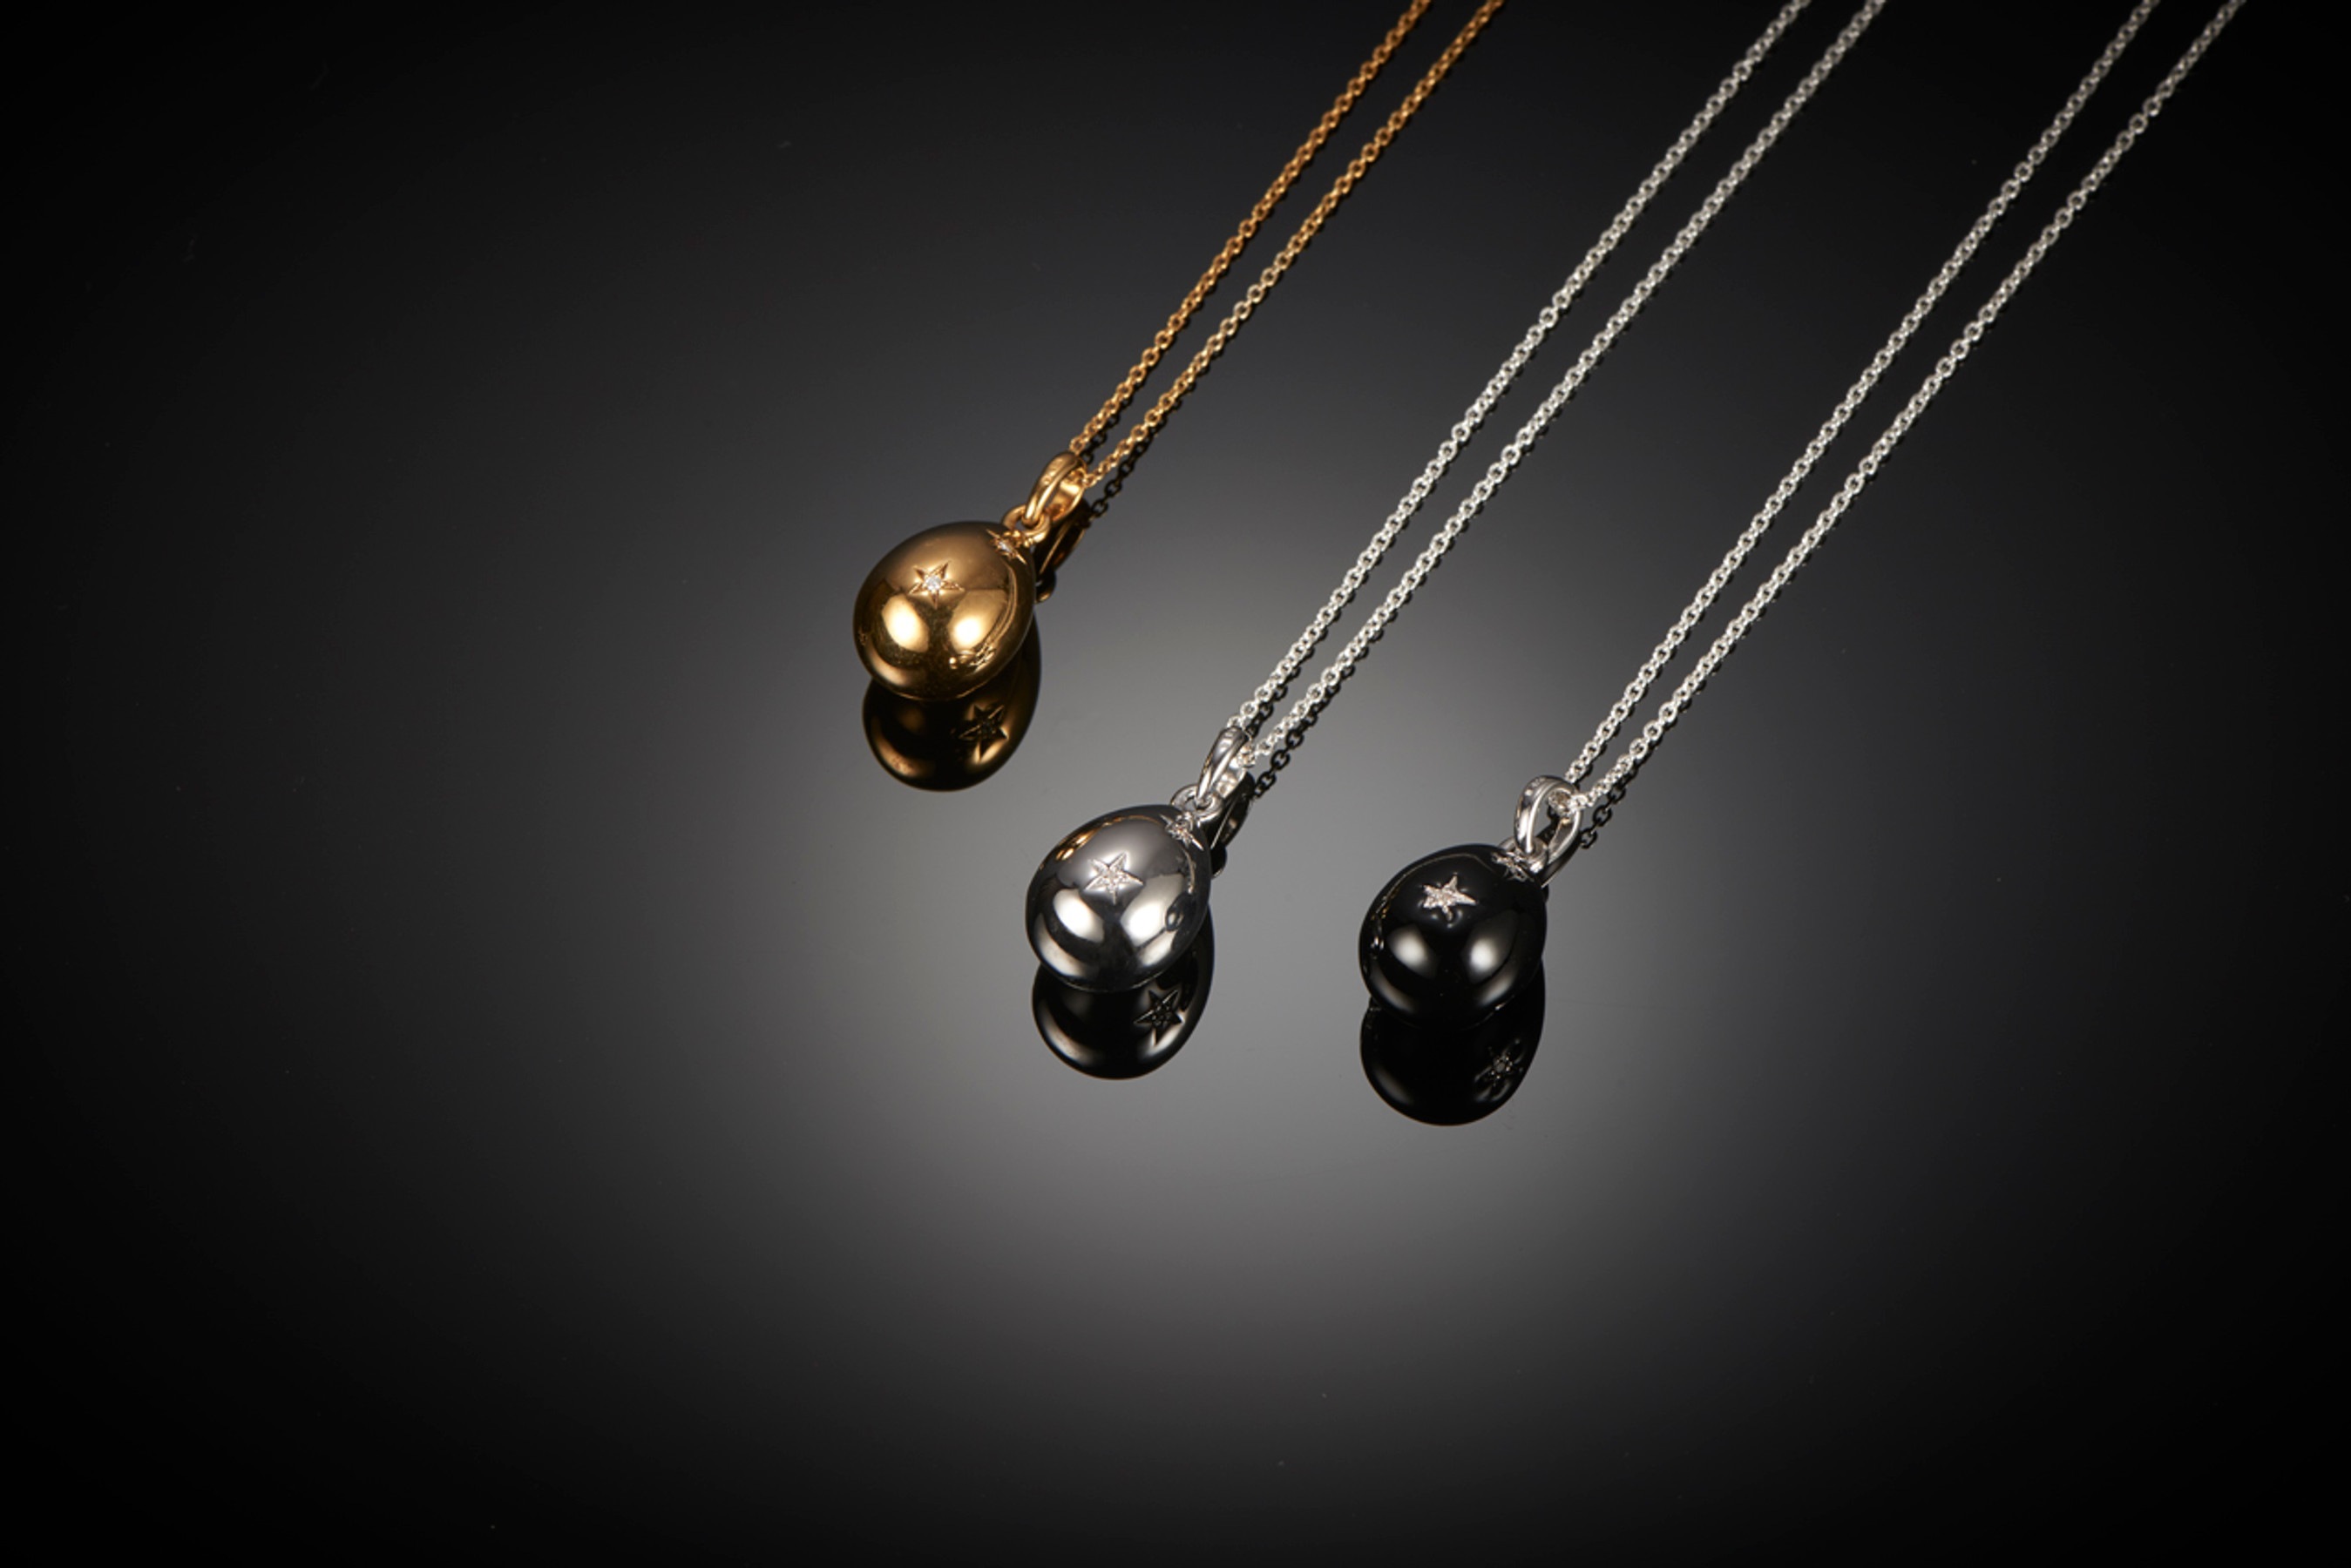 Kozminsky Egg Pendant. Made exclusively for Kozminsky.  Silver with diamonds: $475    Gold plated with diamonds: $475  Black enamel with diamonds: $495